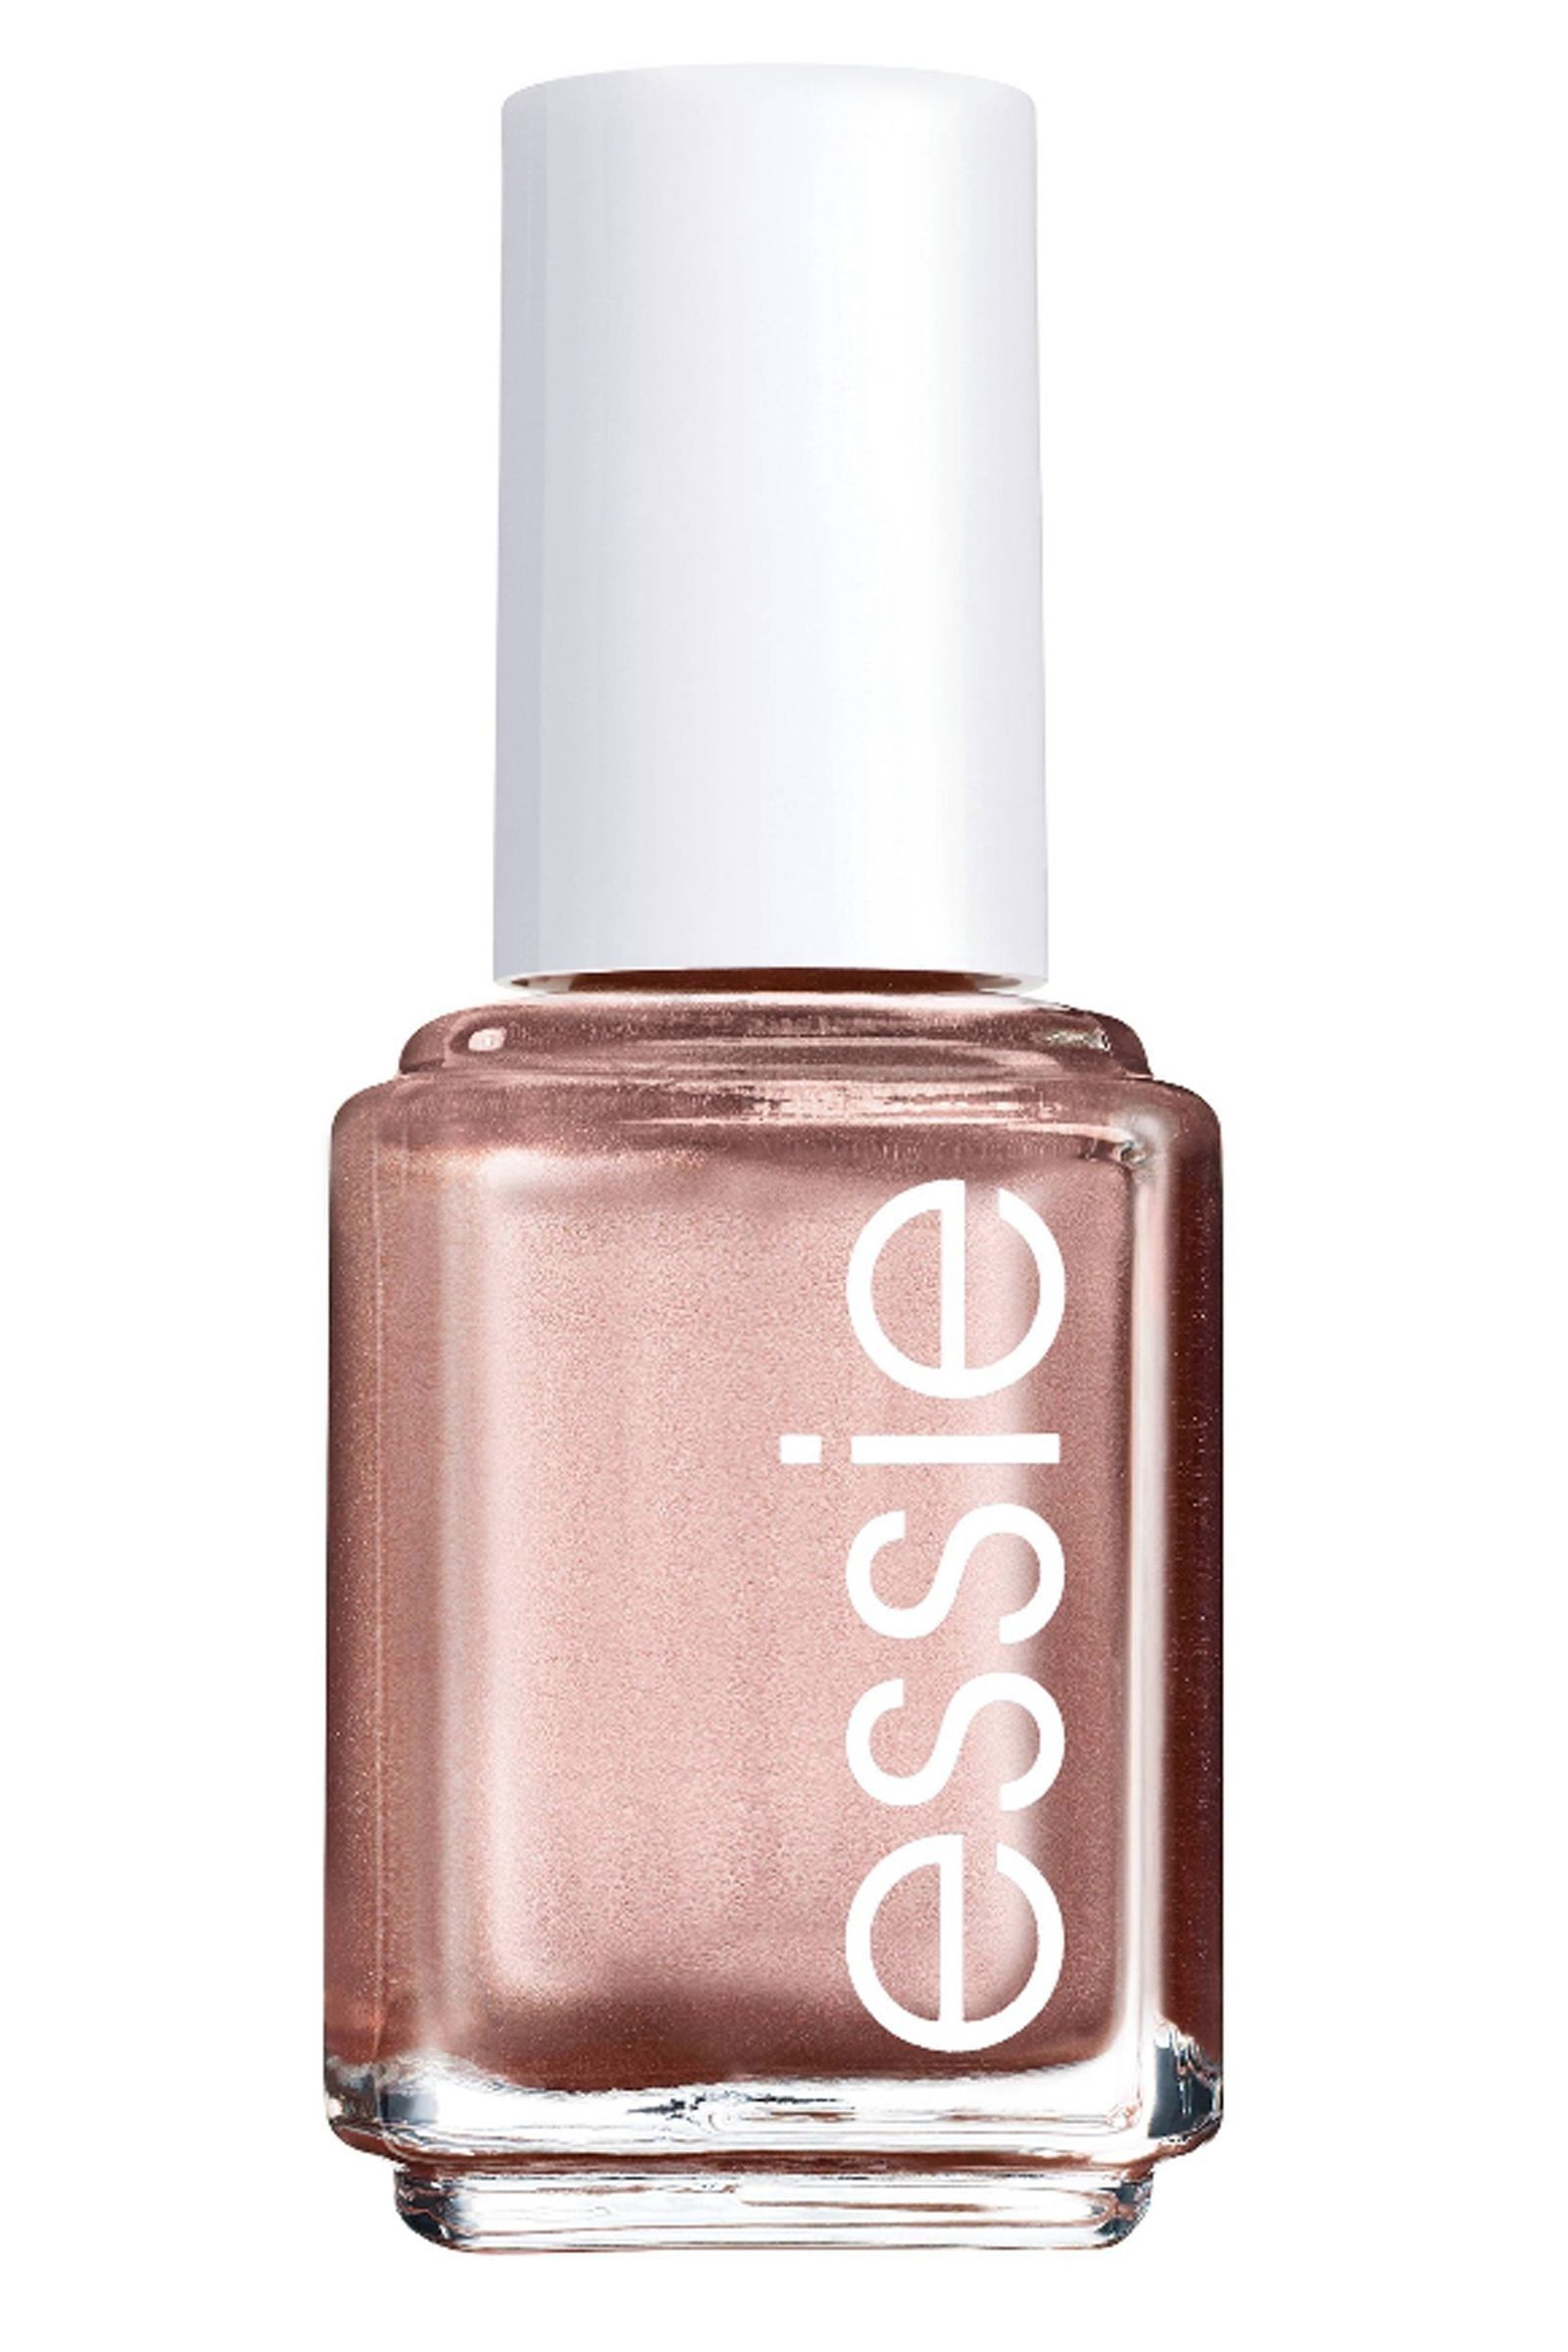 15 Pretty Nail Polish Colors Practically Made For Christmas ...